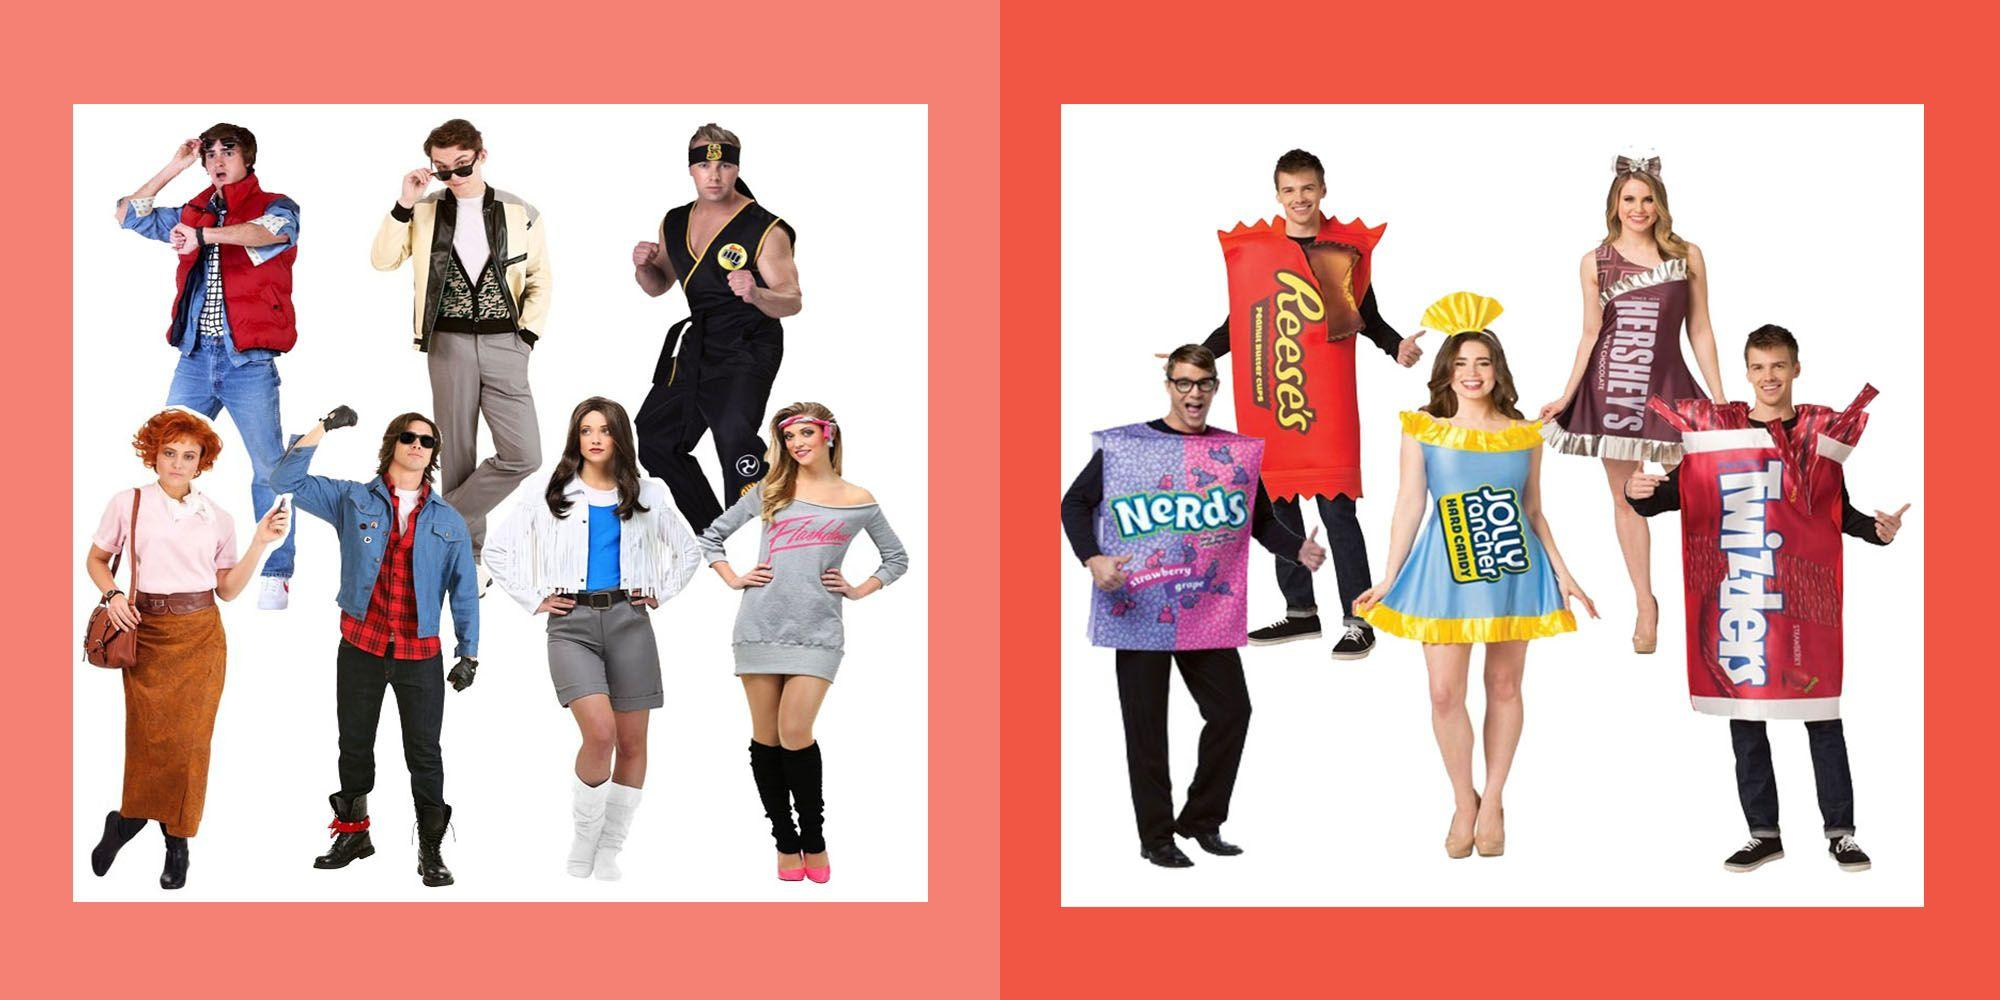 """<p>Why go solo when you can go in a group? <a href=""""https://www.womansday.com/halloween/"""" rel=""""nofollow noopener"""" target=""""_blank"""" data-ylk=""""slk:Halloween"""" class=""""link rapid-noclick-resp"""">Halloween</a> is the perfect holiday to celebrate with <em>all</em> of your people: <a href=""""https://www.womansday.com/home/crafts-projects/how-to/g510/10-easy-to-make-kids-costumes-124463/"""" rel=""""nofollow noopener"""" target=""""_blank"""" data-ylk=""""slk:kids"""" class=""""link rapid-noclick-resp"""">kids</a>, <a href=""""https://www.womansday.com/life/pet-care/g1883/pet-cat-halloween-costumes/"""" rel=""""nofollow noopener"""" target=""""_blank"""" data-ylk=""""slk:furry friends"""" class=""""link rapid-noclick-resp"""">furry friends</a>, <a href=""""https://www.womansday.com/life/g1898/family-halloween-costumes/"""" rel=""""nofollow noopener"""" target=""""_blank"""" data-ylk=""""slk:family"""" class=""""link rapid-noclick-resp"""">family</a> and, of course, your tight-knit circle of friends. So why no dress as a group?</p><p>There's no better feeling than successfully pulling off spectacular group <a href=""""https://www.womansday.com/style/fashion/g490/20-clever-last-minute-costume-ideas/"""" rel=""""nofollow noopener"""" target=""""_blank"""" data-ylk=""""slk:Halloween costume"""" class=""""link rapid-noclick-resp"""">Halloween costume</a>, especially when you arrive at the party and the compliments start rolling in. But before you can get to the part where you're accepting the trophy for best costume, you and your friends must first choose your Halloween look — and anyone who has tried to coordinate outfits with the whole gang knows how tricky it can be to get everyone to agree on one idea. </p><p>With group Halloween costume ideas ranging from whimsical, like ice cream sundaes and fuzzy dice, to iconic, like the Sanderson sisters and the Disney princesses, it'll be hard to go wrong with any of these choices. Get the gang together for a <a href=""""https://www.womansday.com/life/g1908/cheap-and-easy-ways-to-celebrate-halloween/"""" rel=""""nofollow noopener"""" target=""""_blank"""" data-ylk=""""slk:fest"""